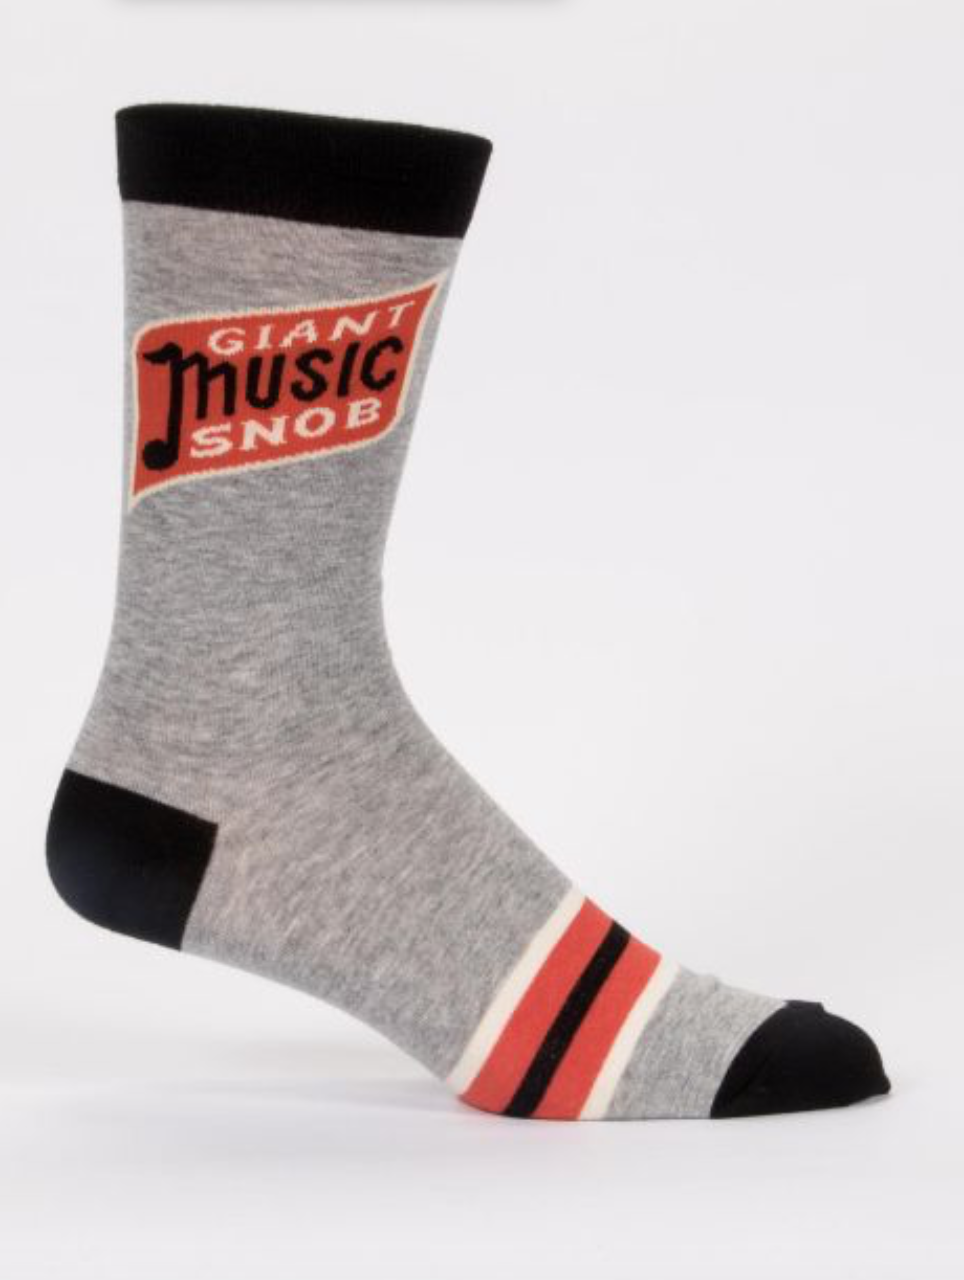 Giant Music Snob Socks - Men